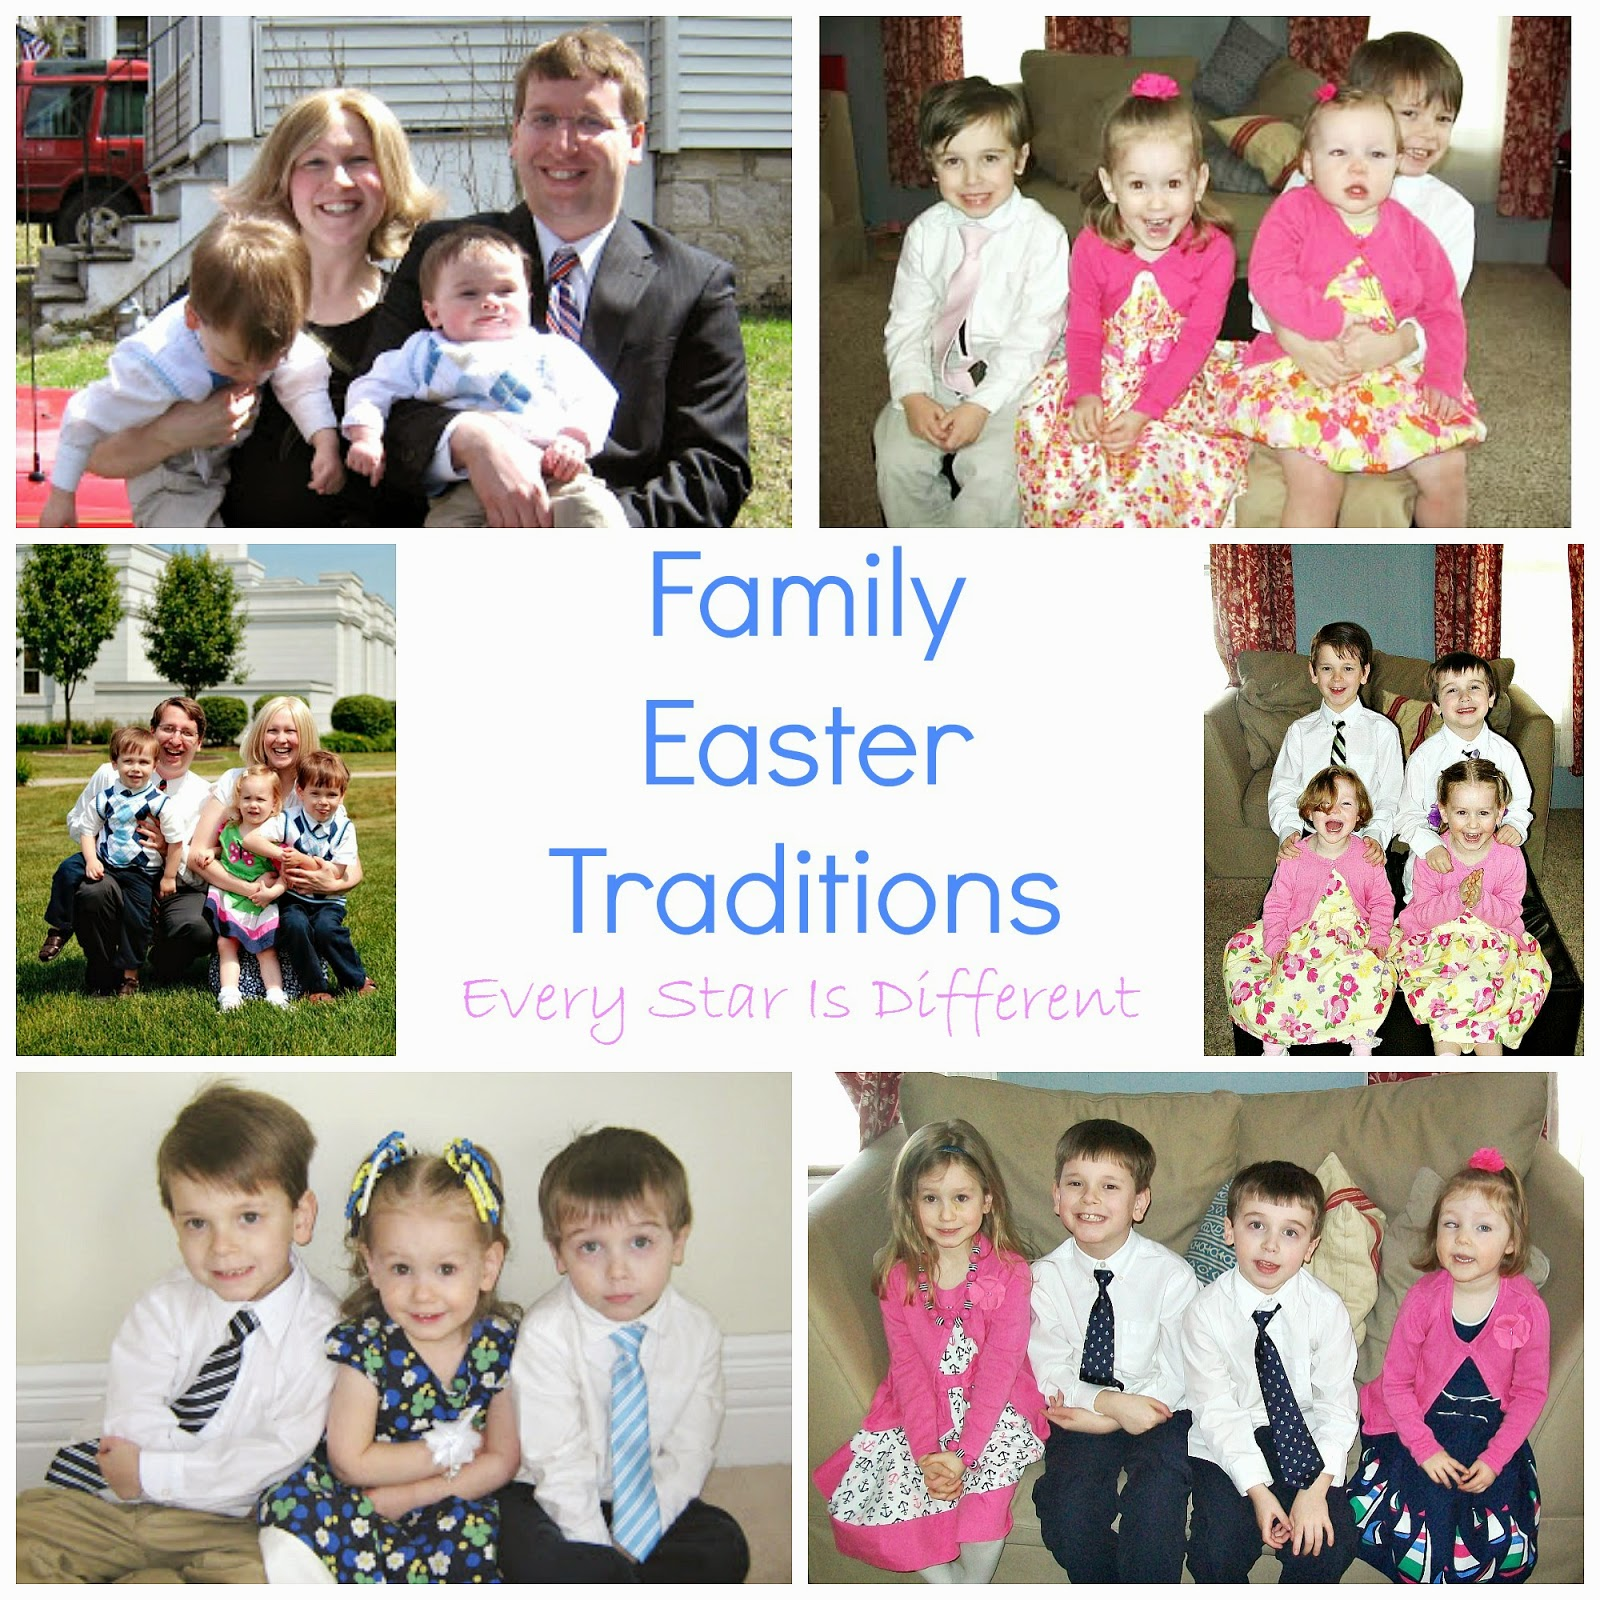 Family Easter Traditions